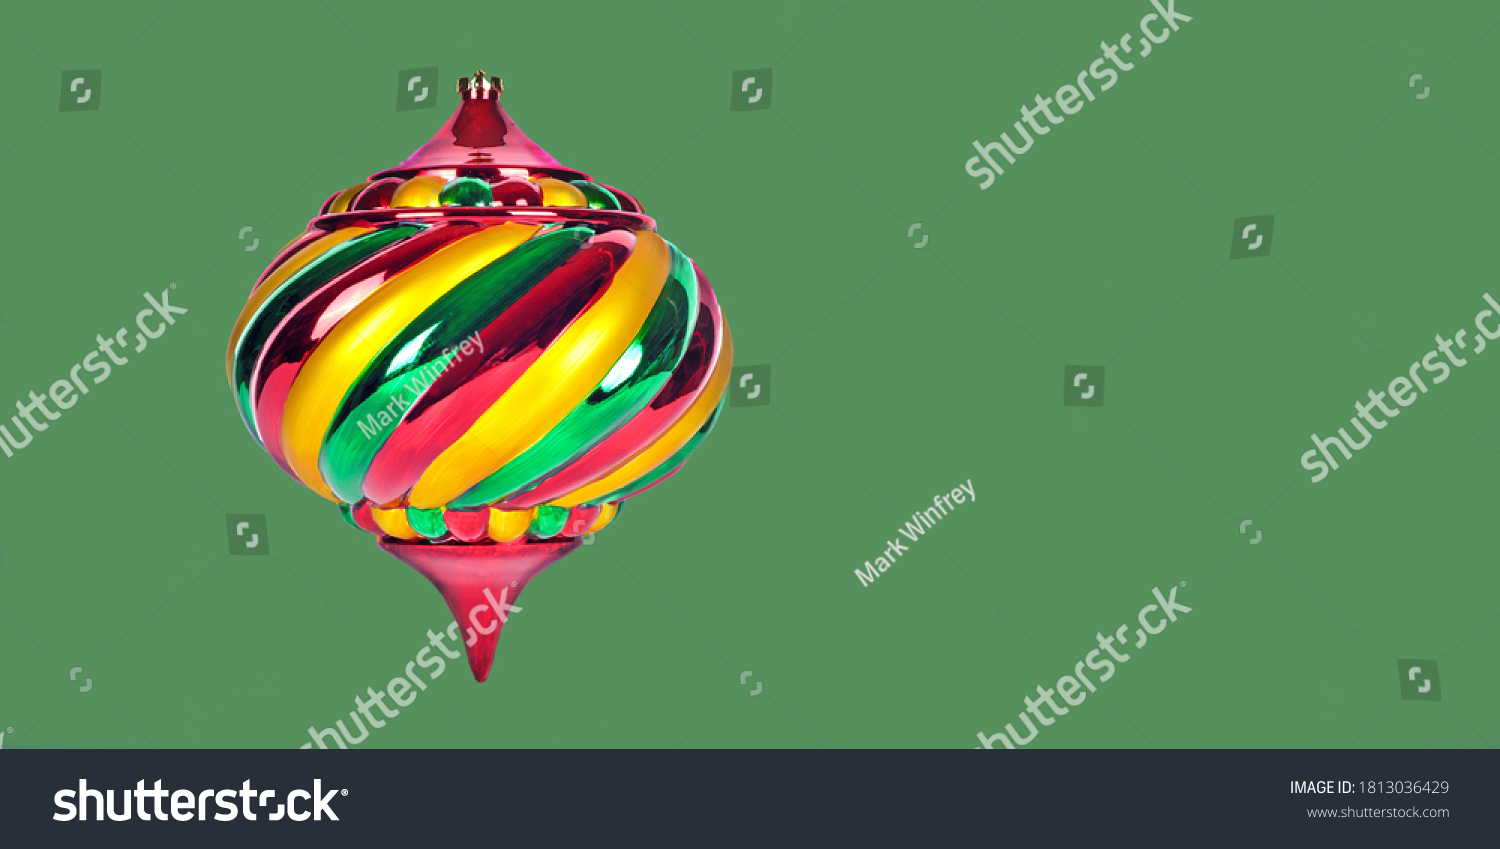 stock-photo-christmas-ornament-isolated-